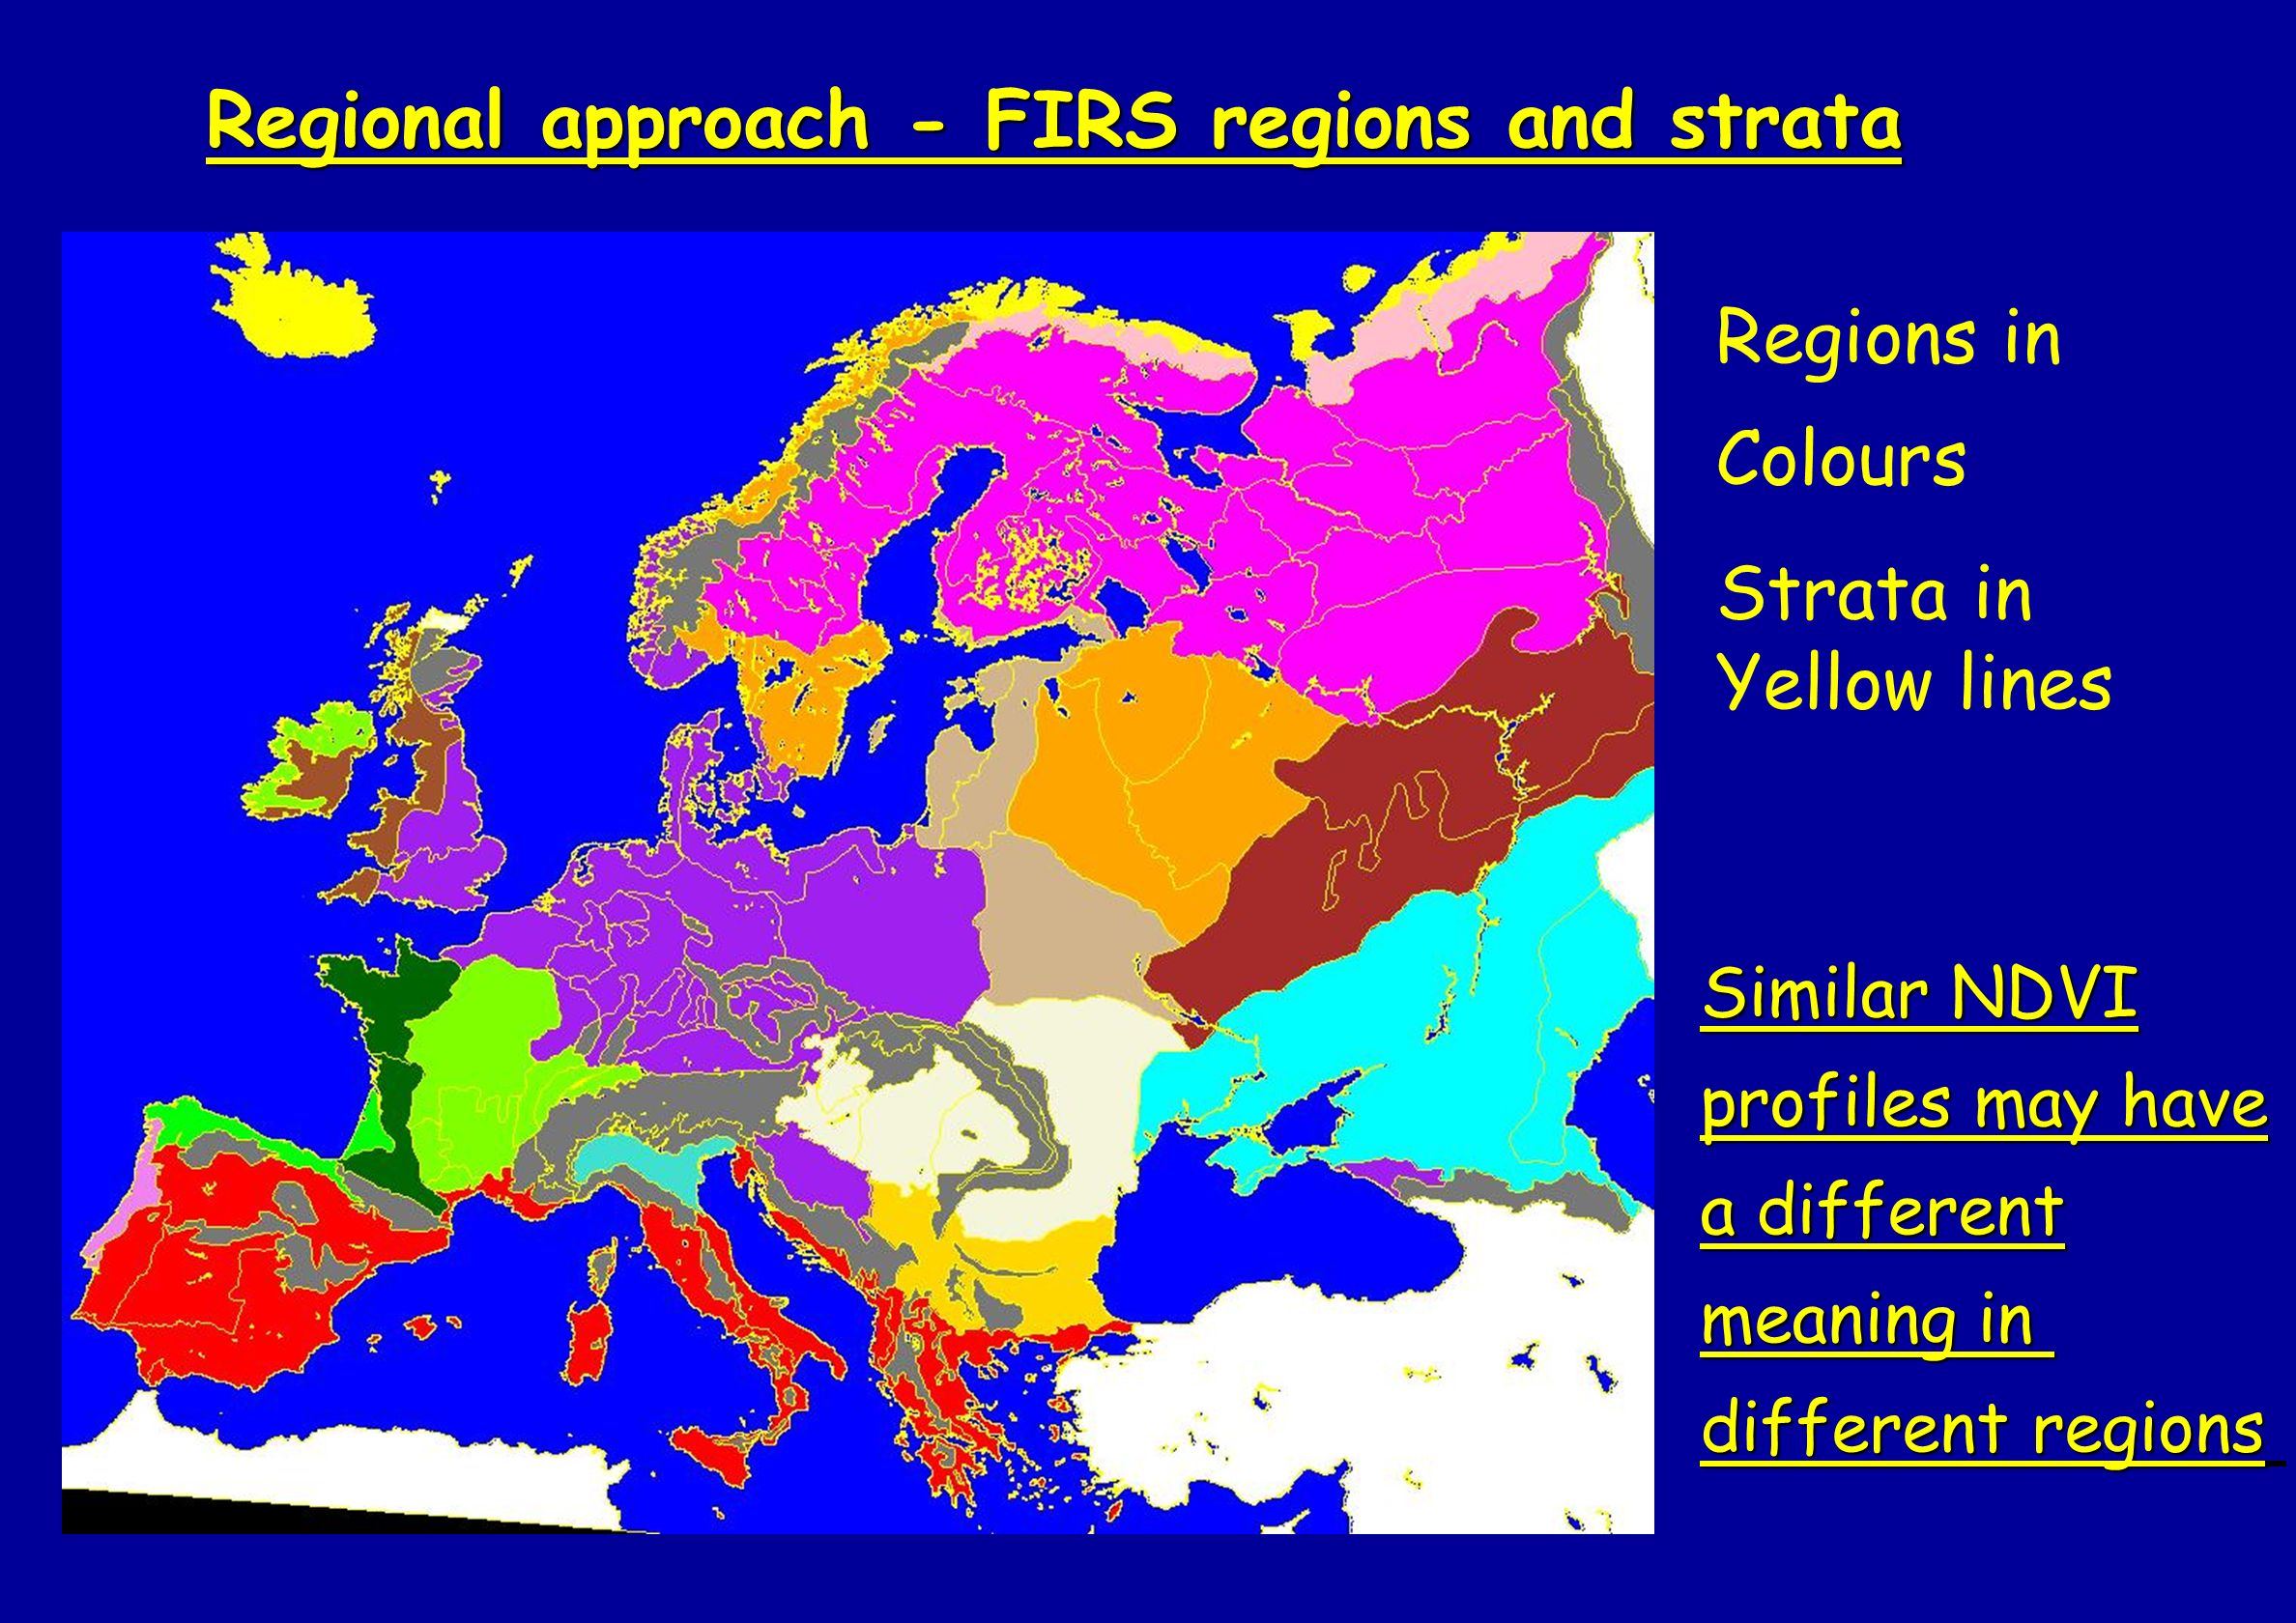 Regional approach - FIRS regions and strata